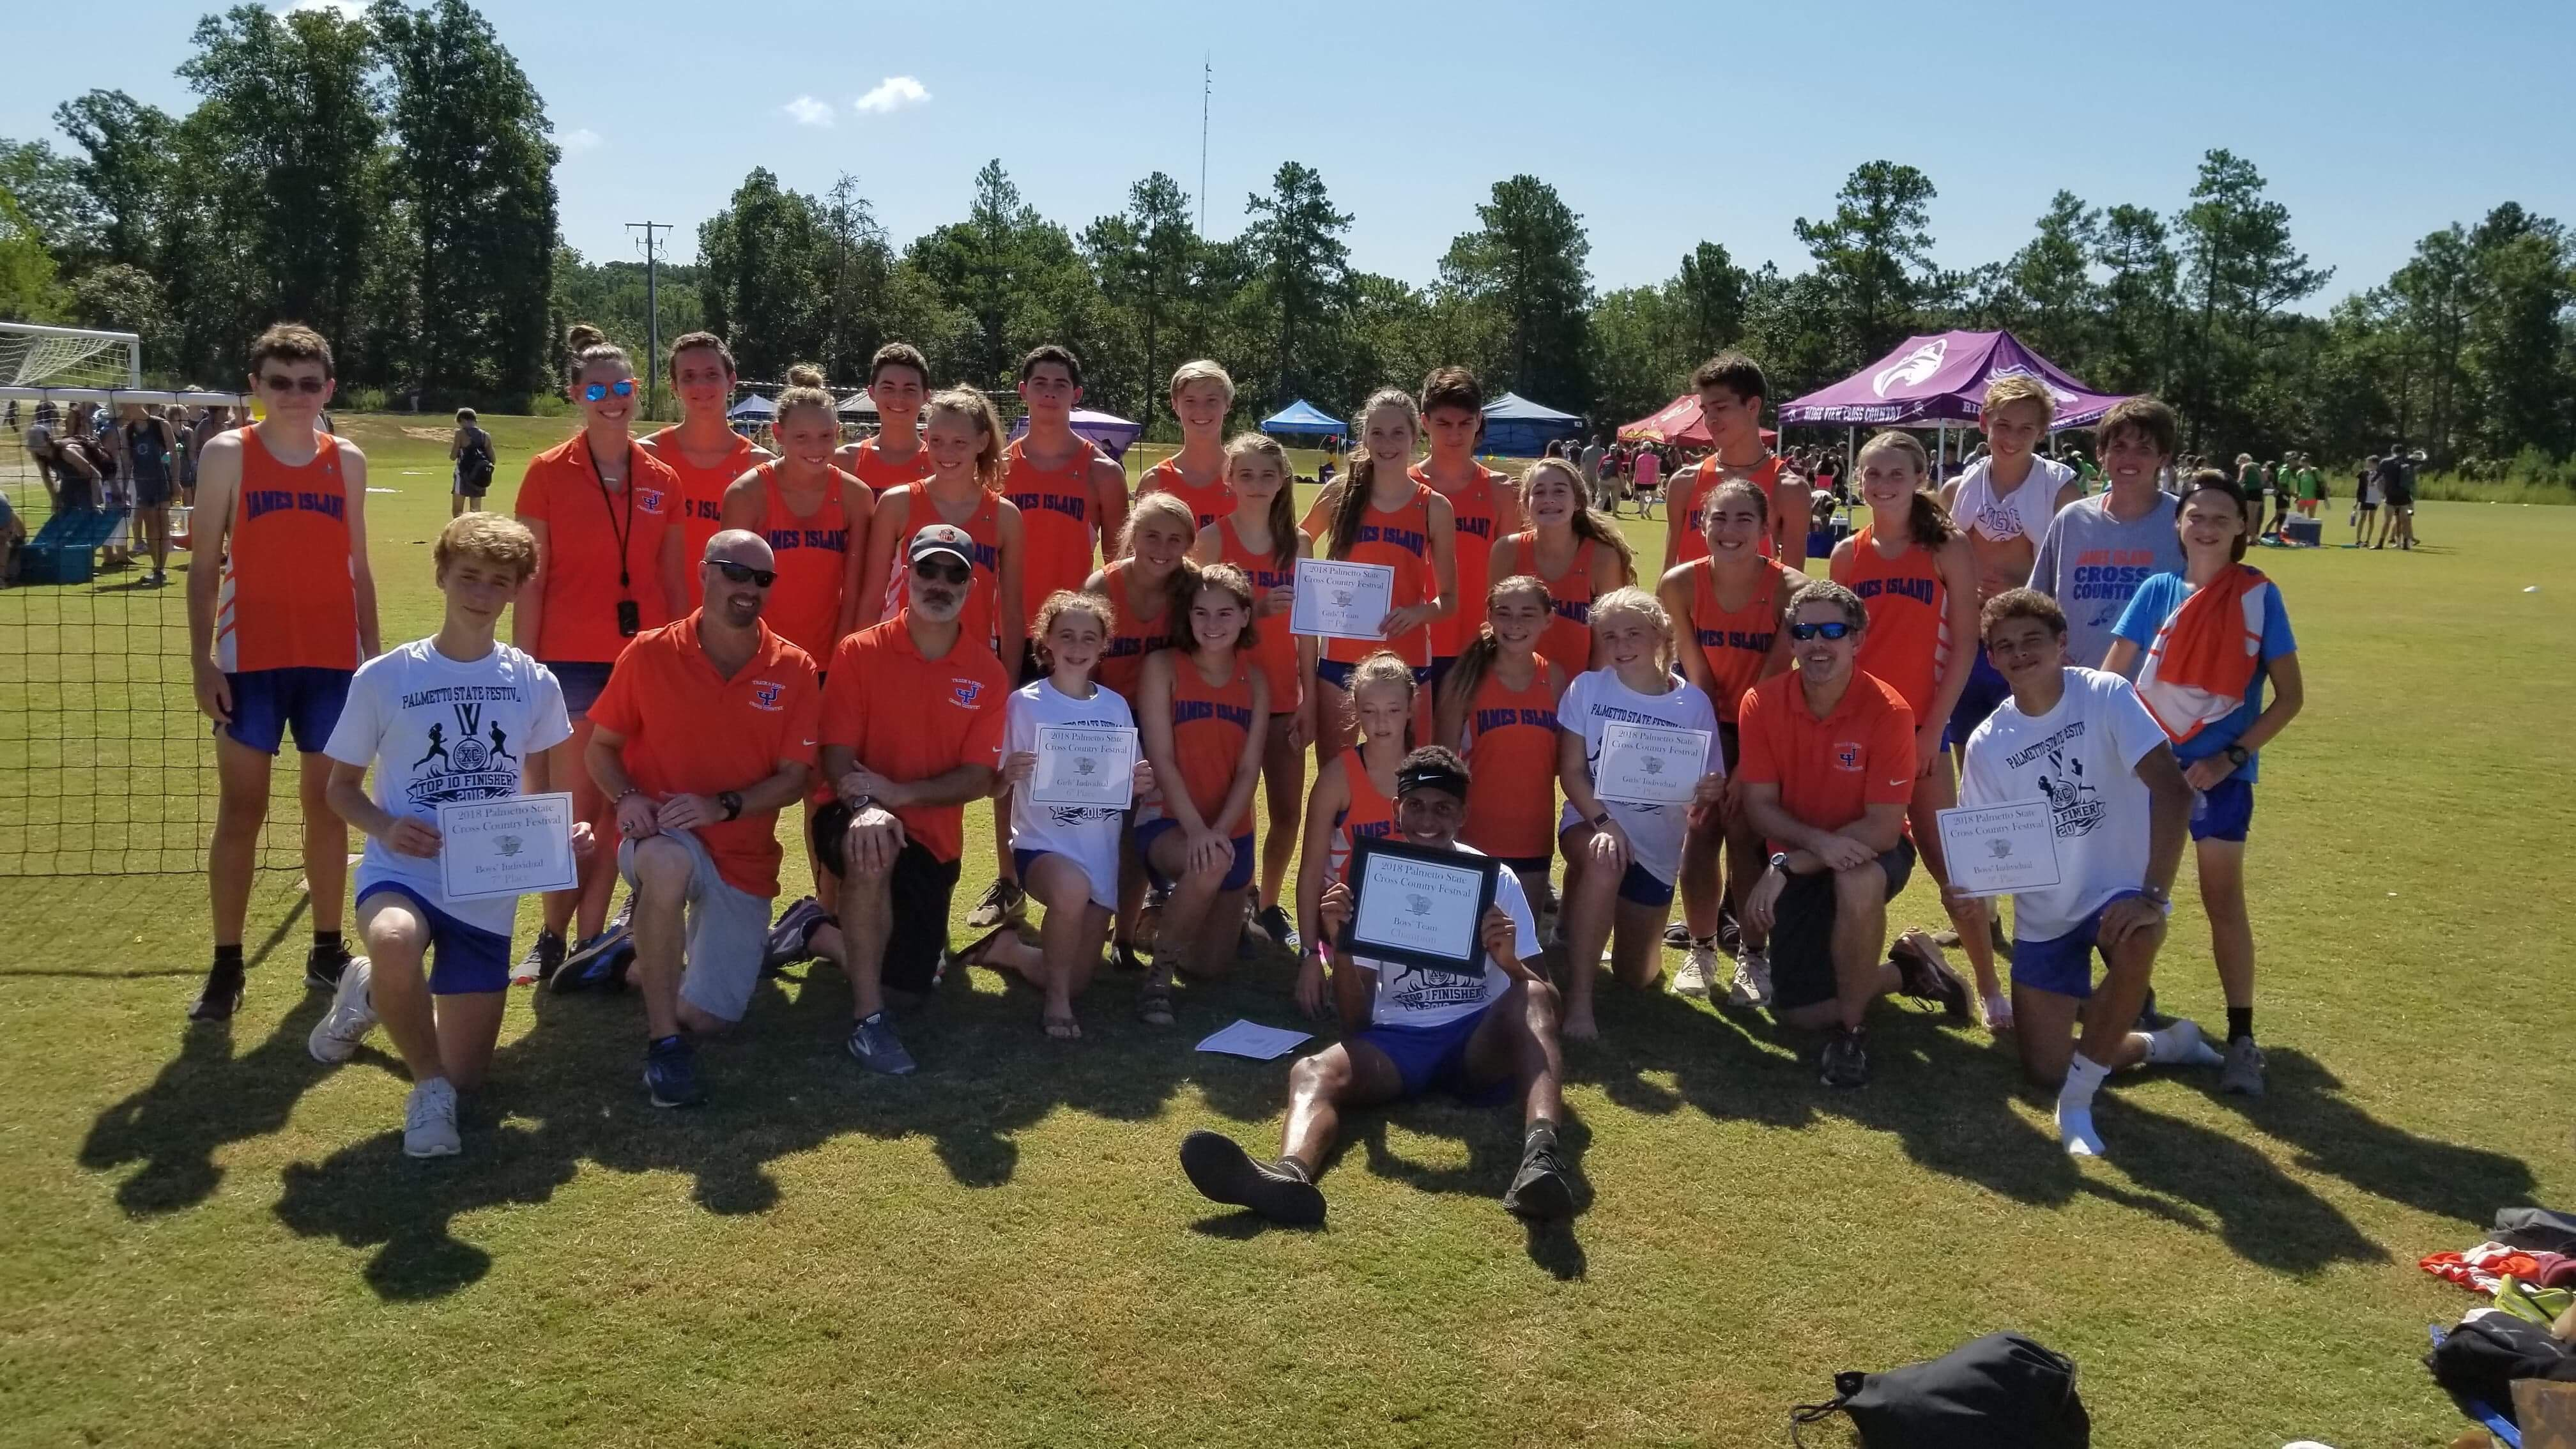 Cross Country Places 2nd at the CIU Invitational